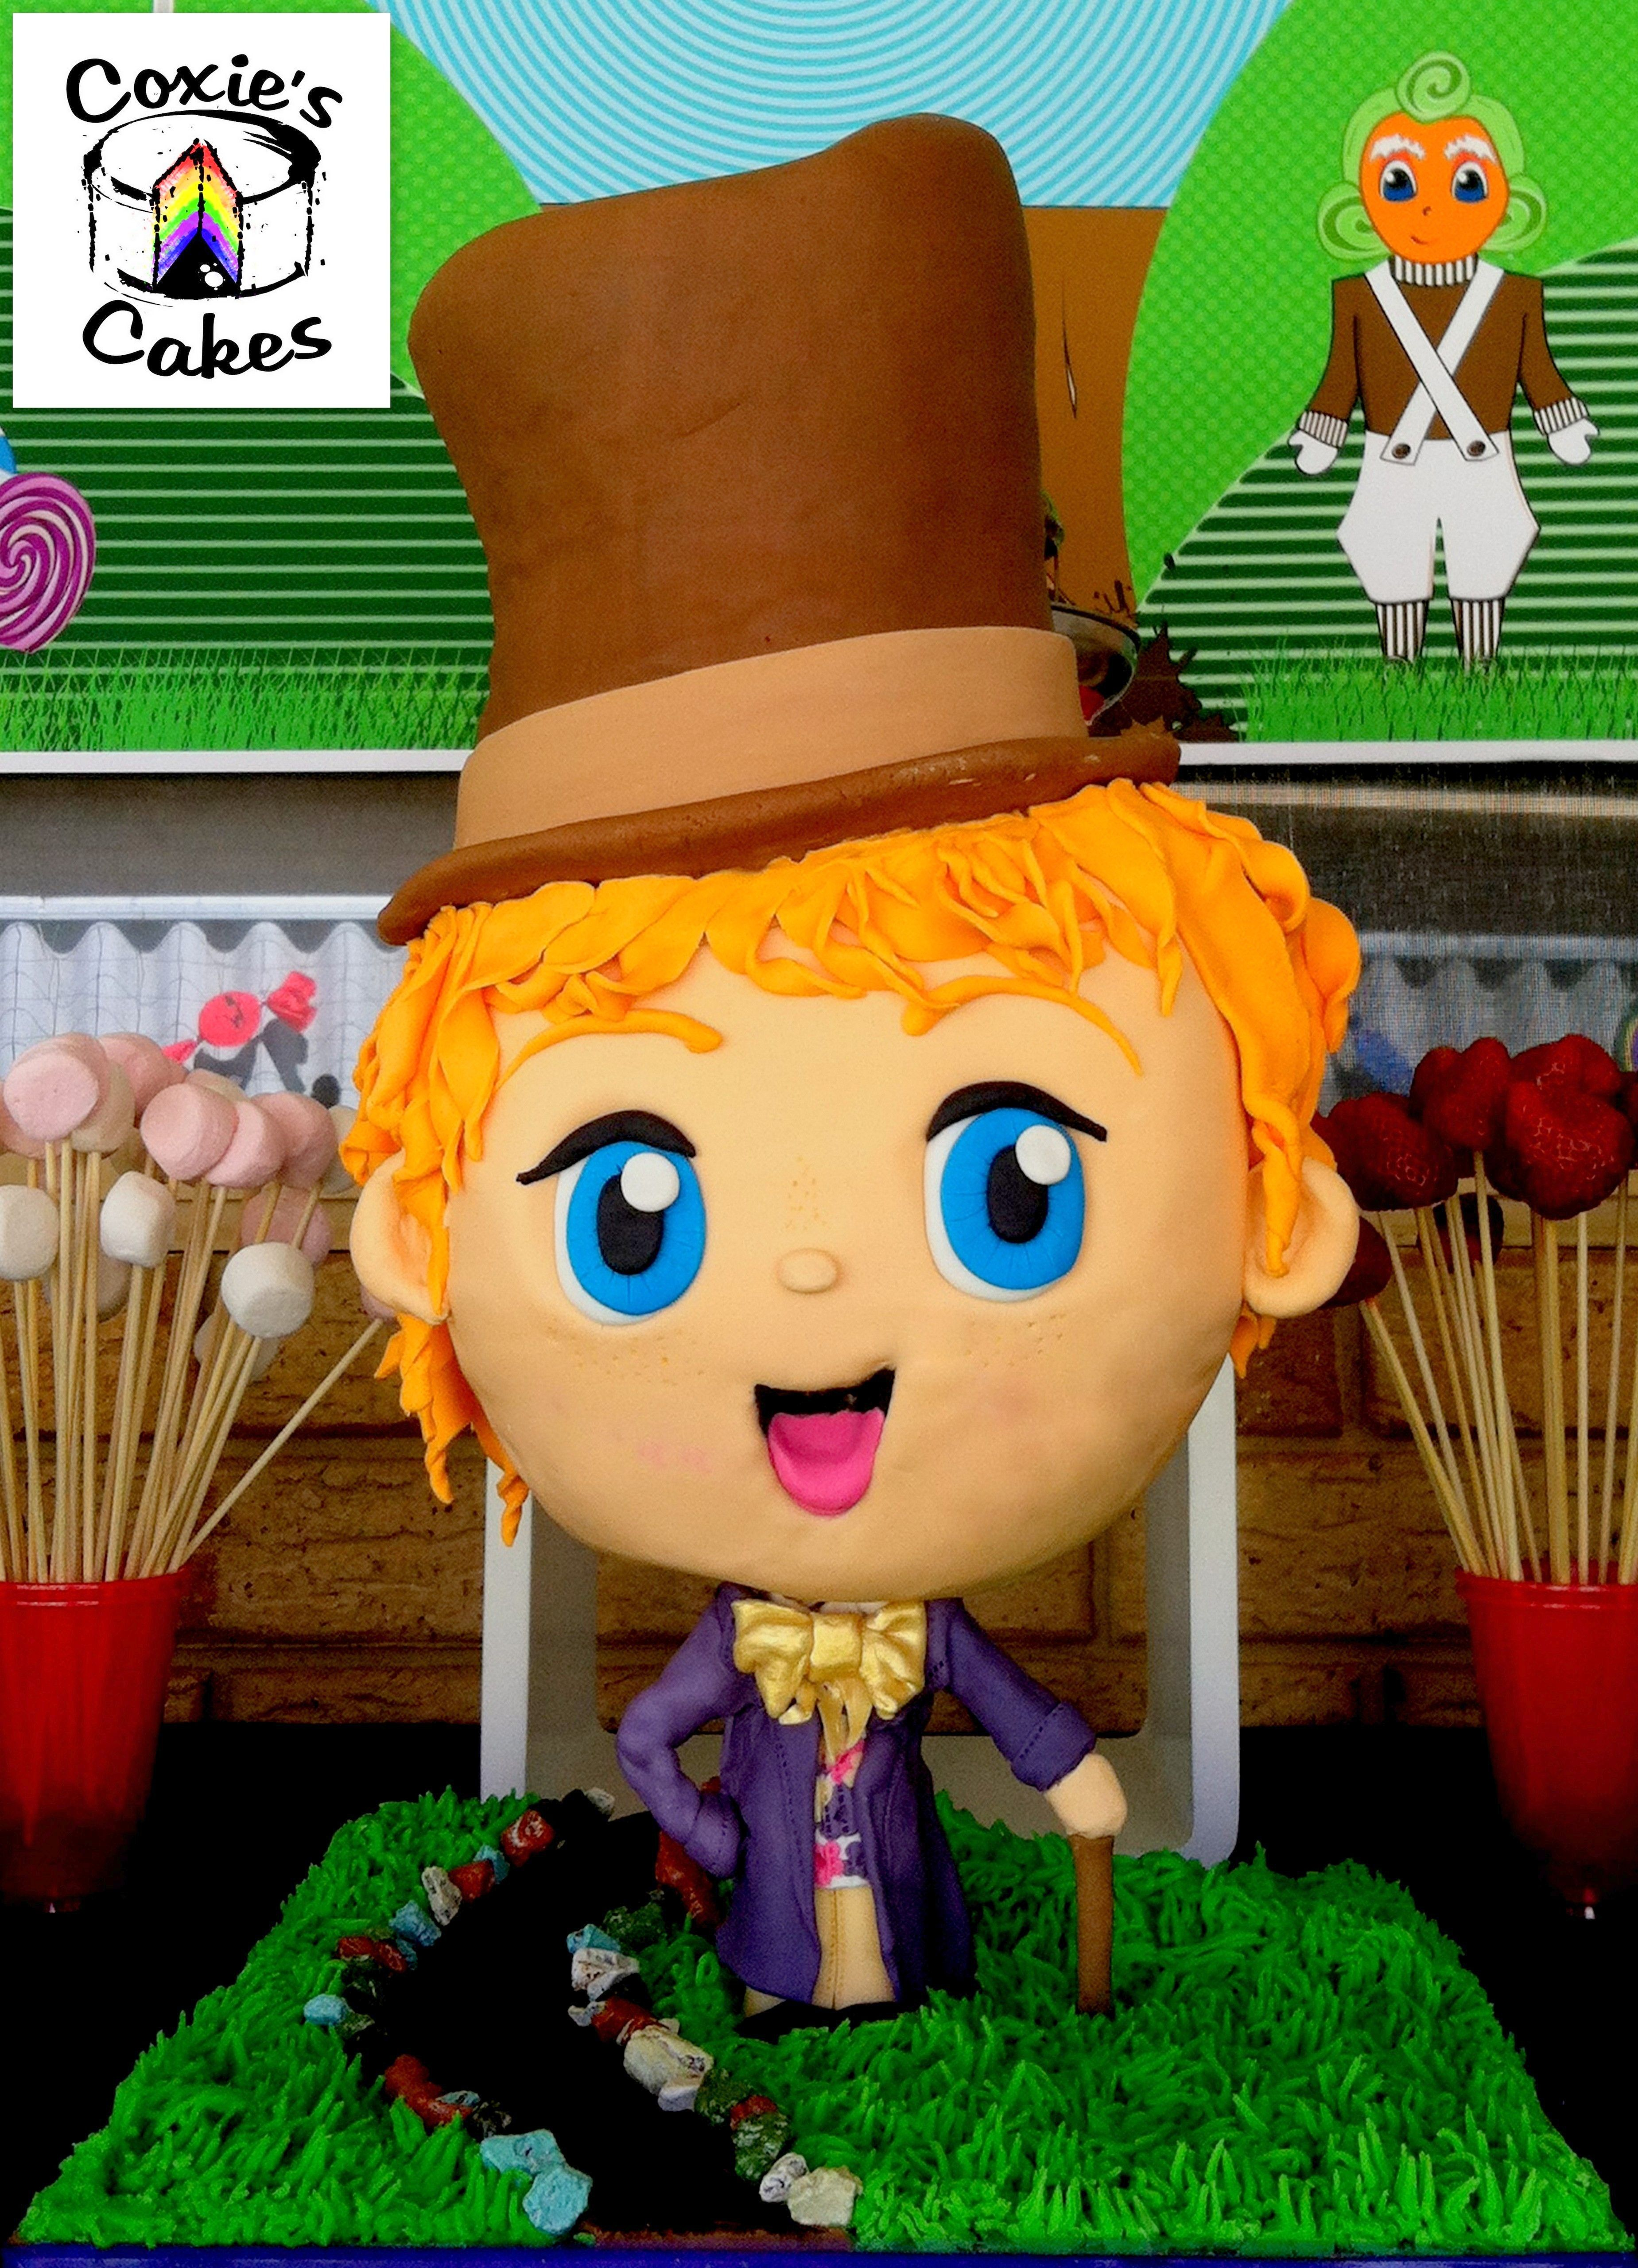 Willy Wonka standing Bobblehead Cake. My son's Willy Wonka and the Chocolate Factory party was sooooo fun!